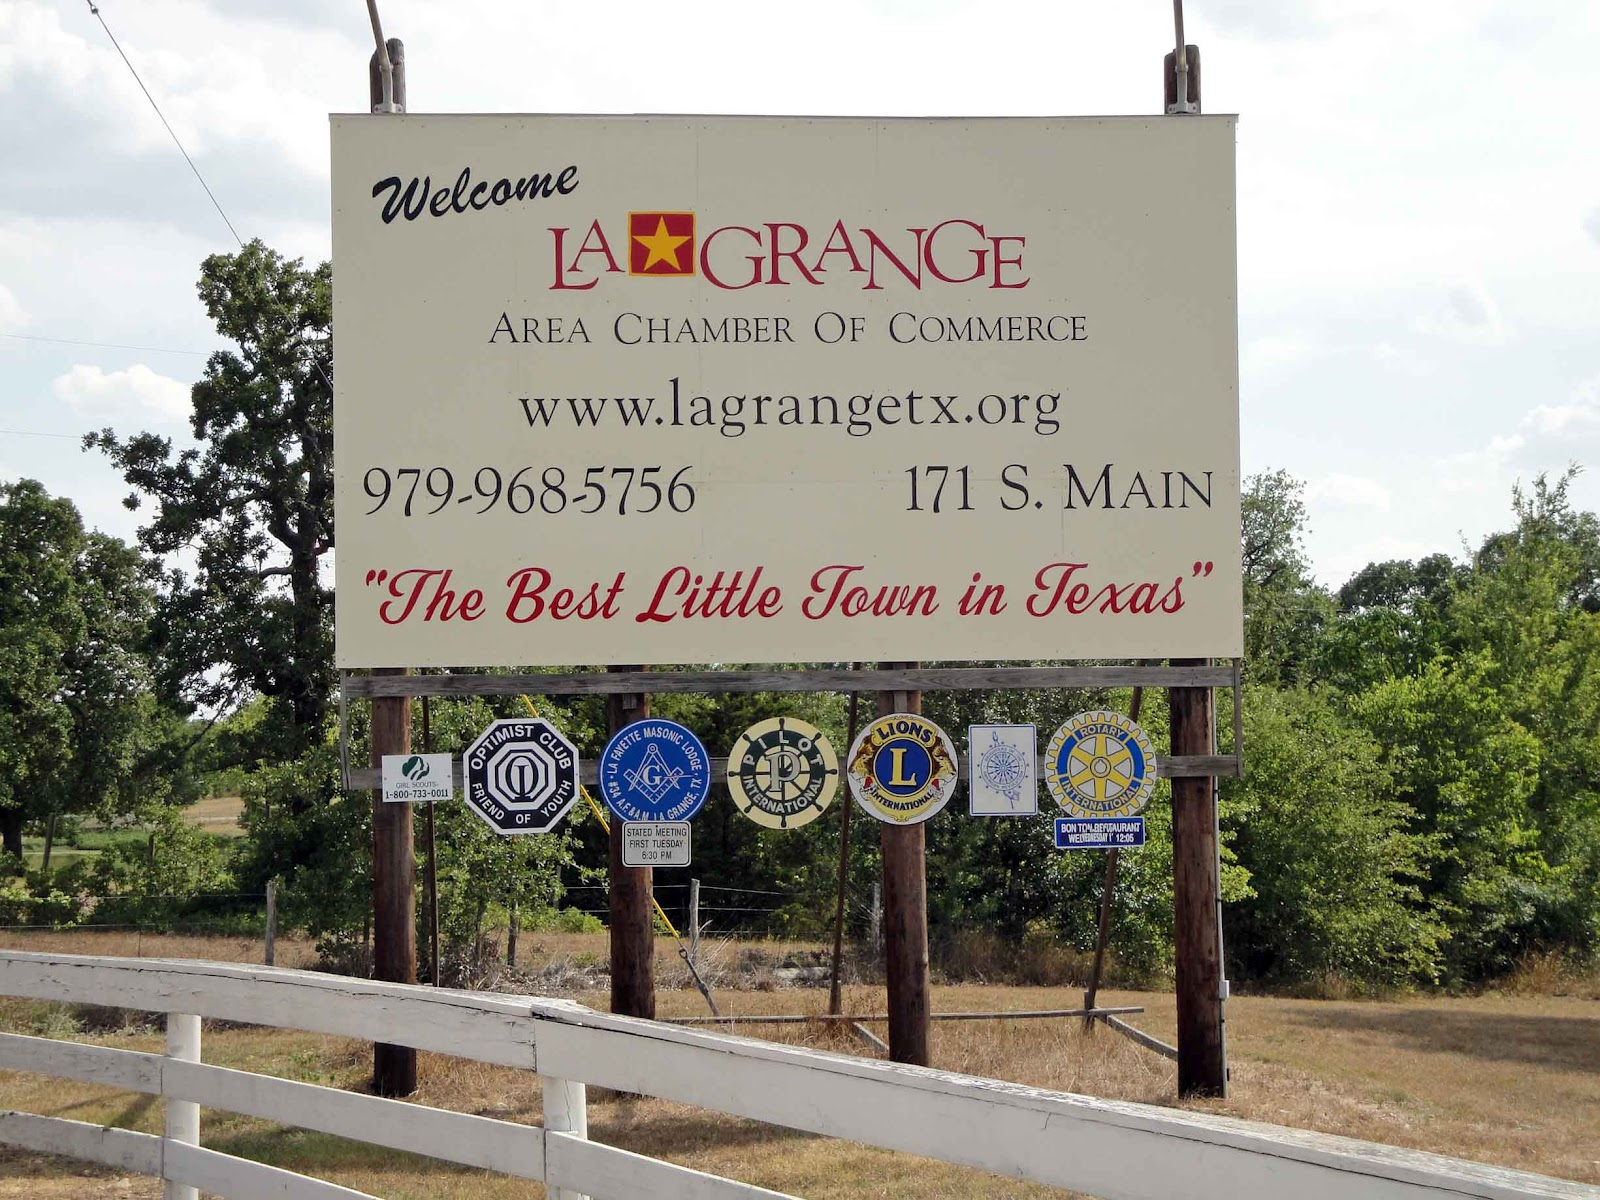 La Grange (TX) United States  city pictures gallery : The Iconic Lone Star: Welcome to La Grange, Texas, 2009.